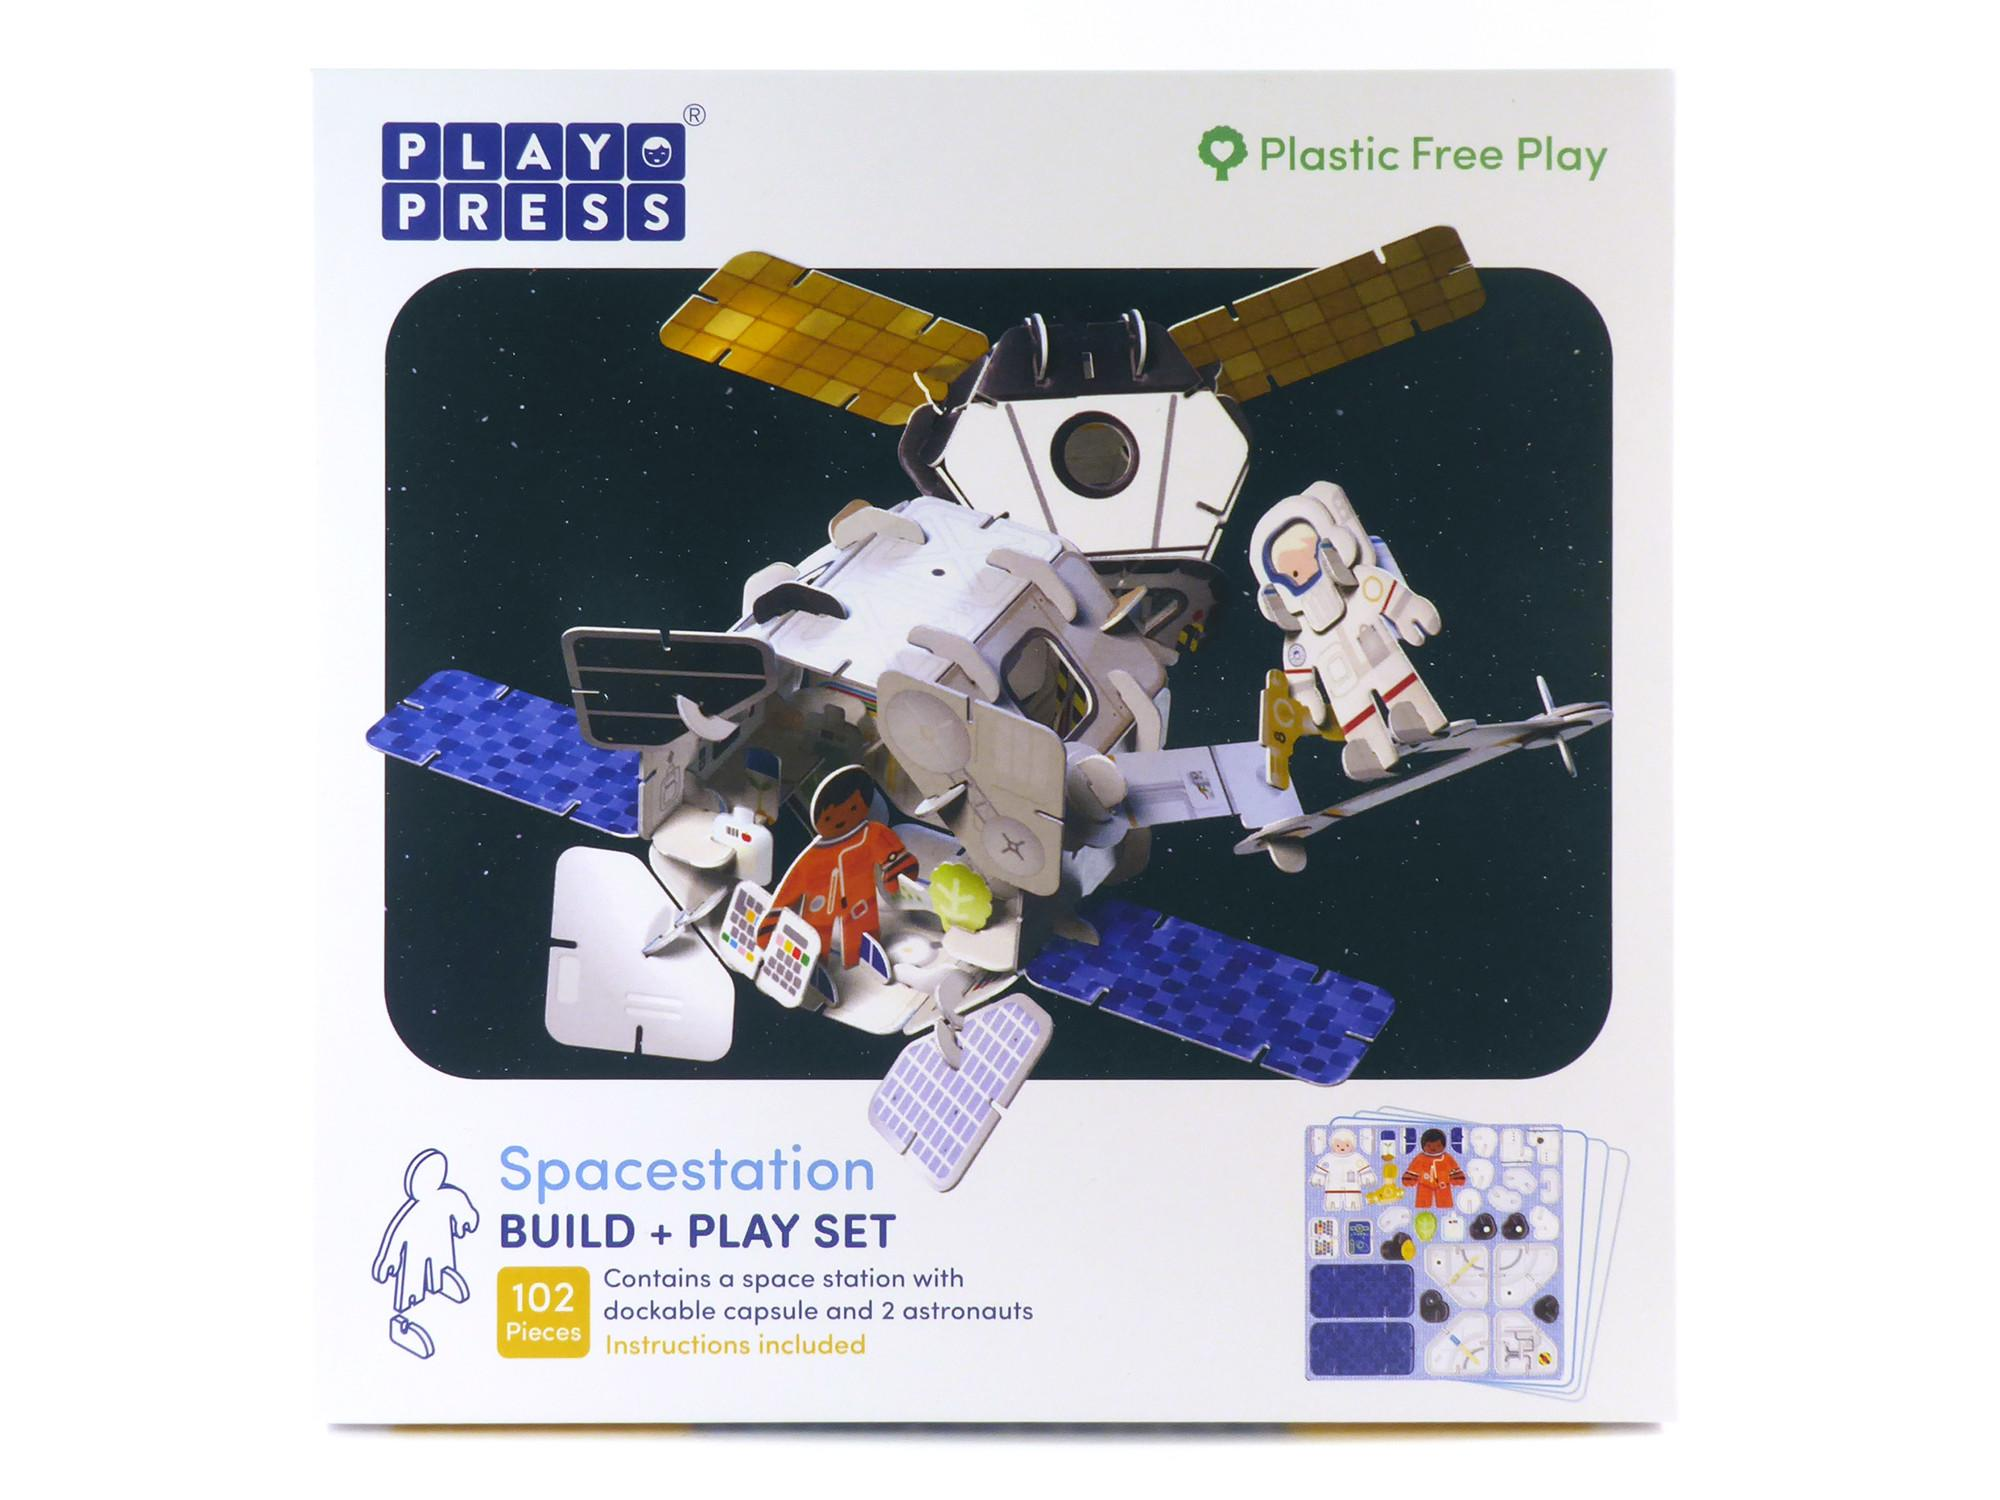 Box containg Play Press Space Station set.